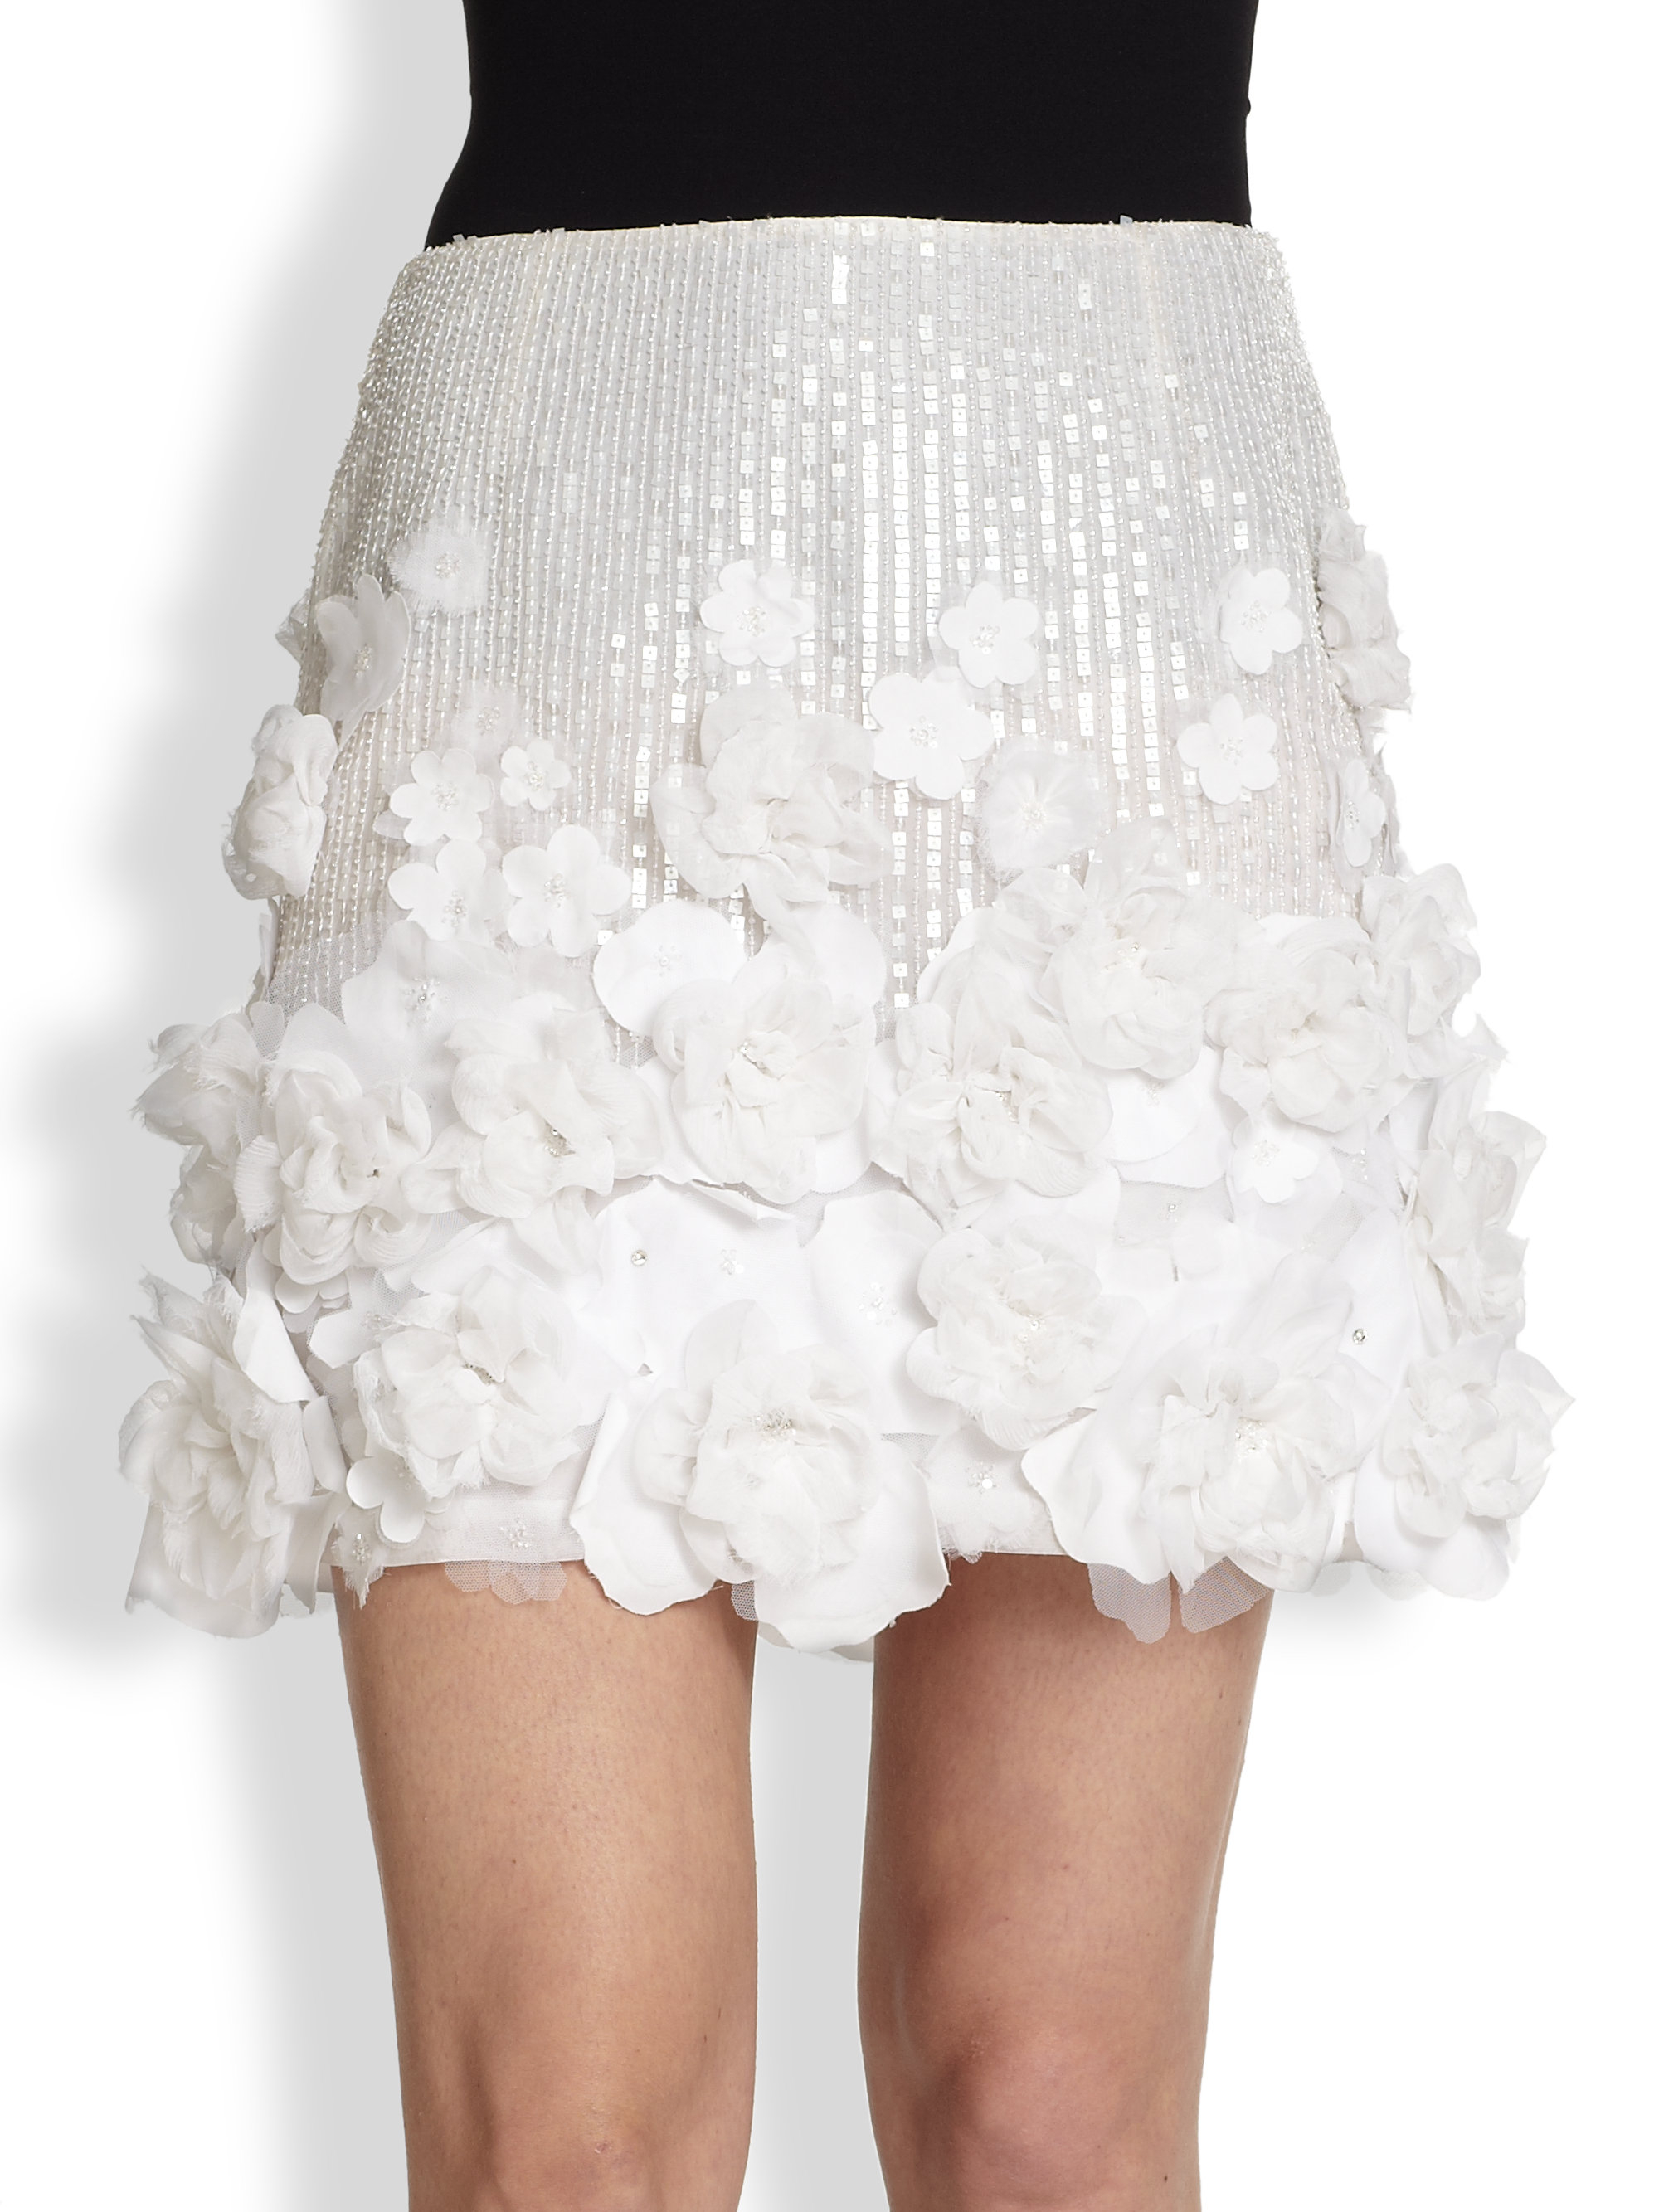 Luxury White Skirt With Flowers Motif - Best Evening Gown ...